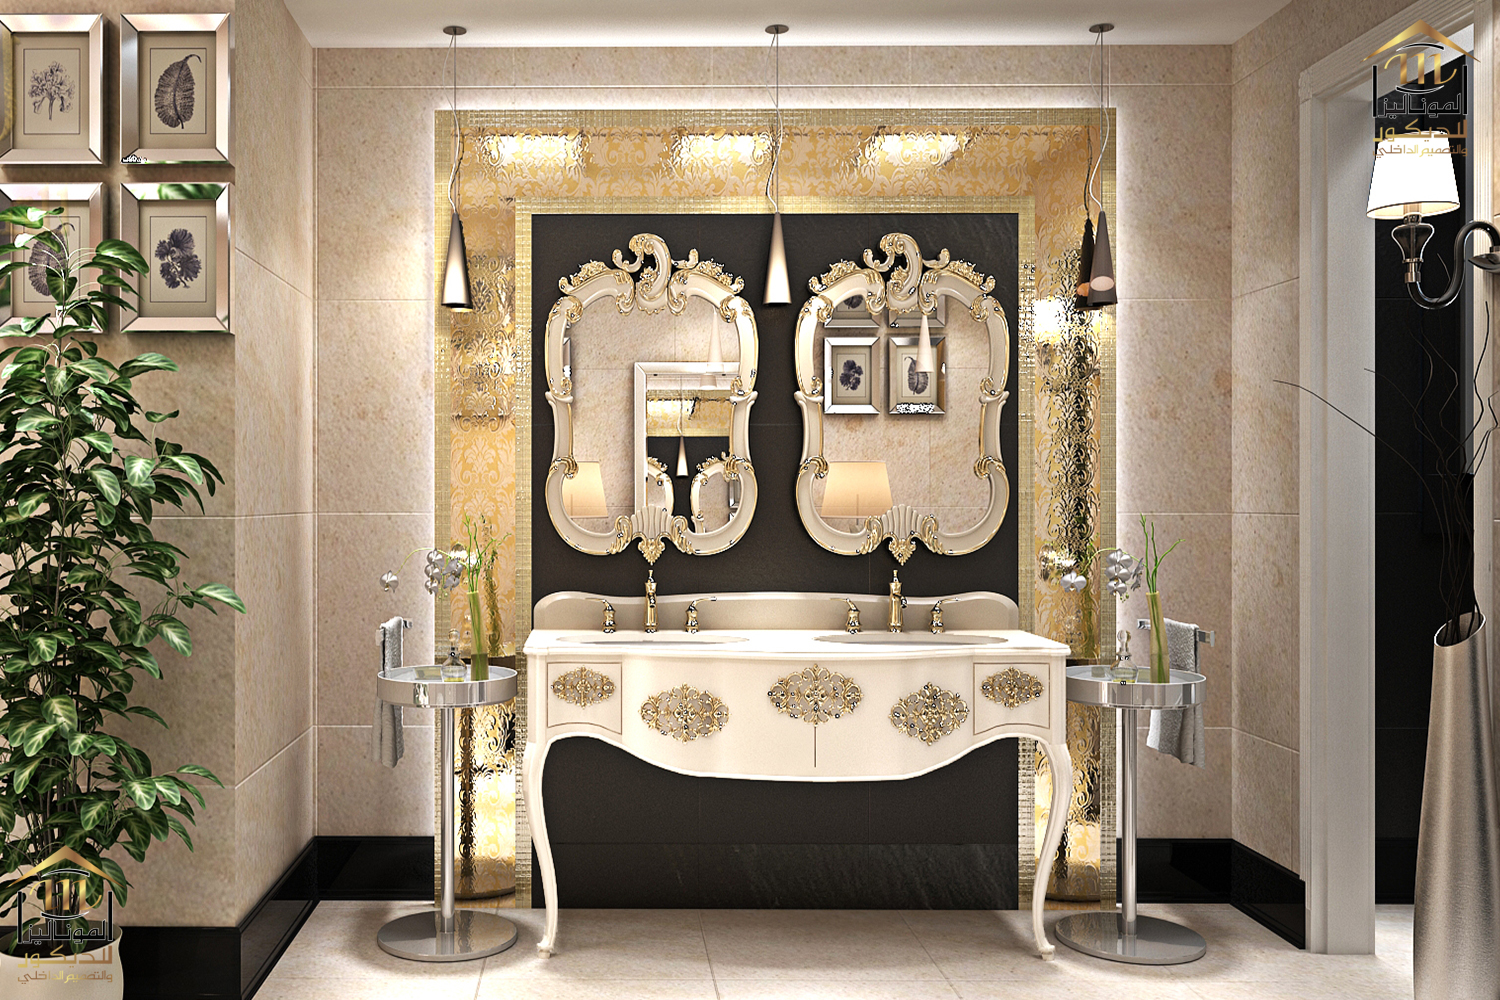 almonaliza group_decoration&interior design_bathrooms (7).jpg